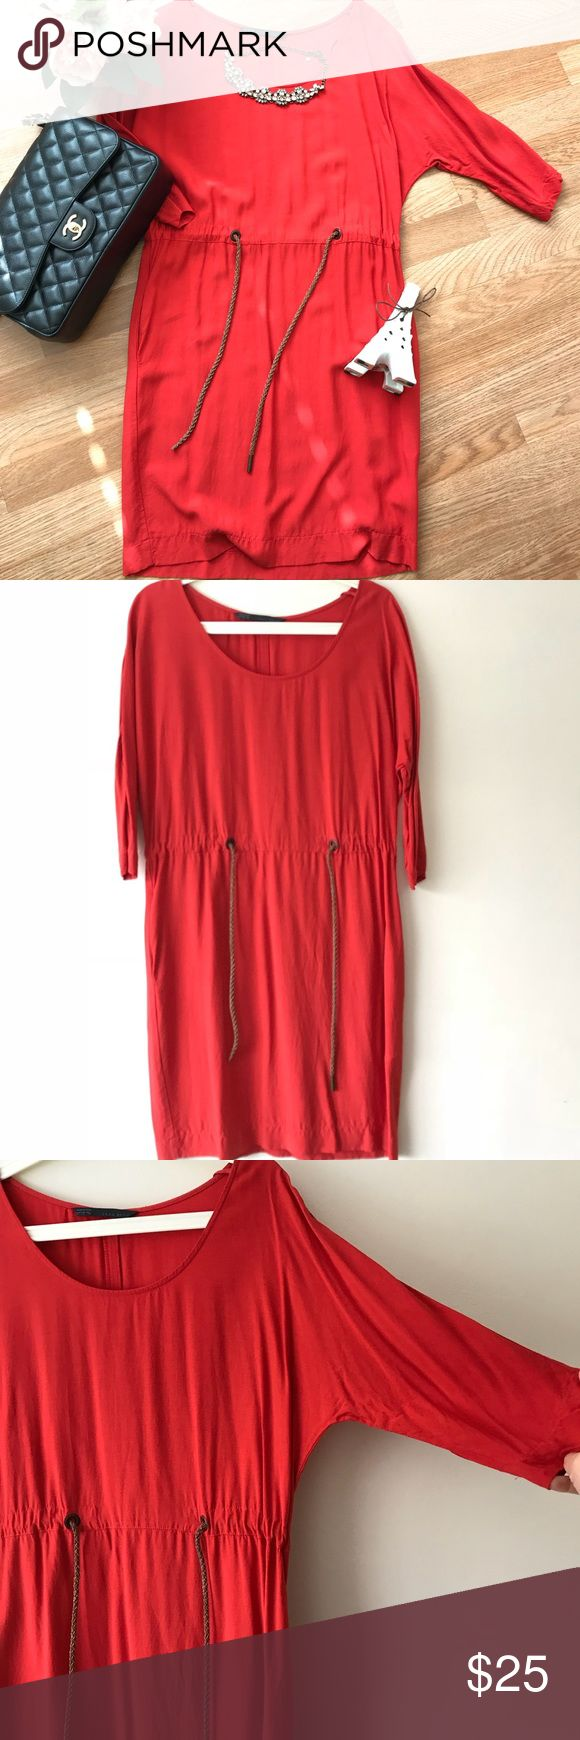 Zara 3/4 Sleeve Red Dress with string belt Zara red 3/4 sleeve dress with a belt around the waist  Size small Worn about 3 times, in great condition Very flattering Zara Dresses